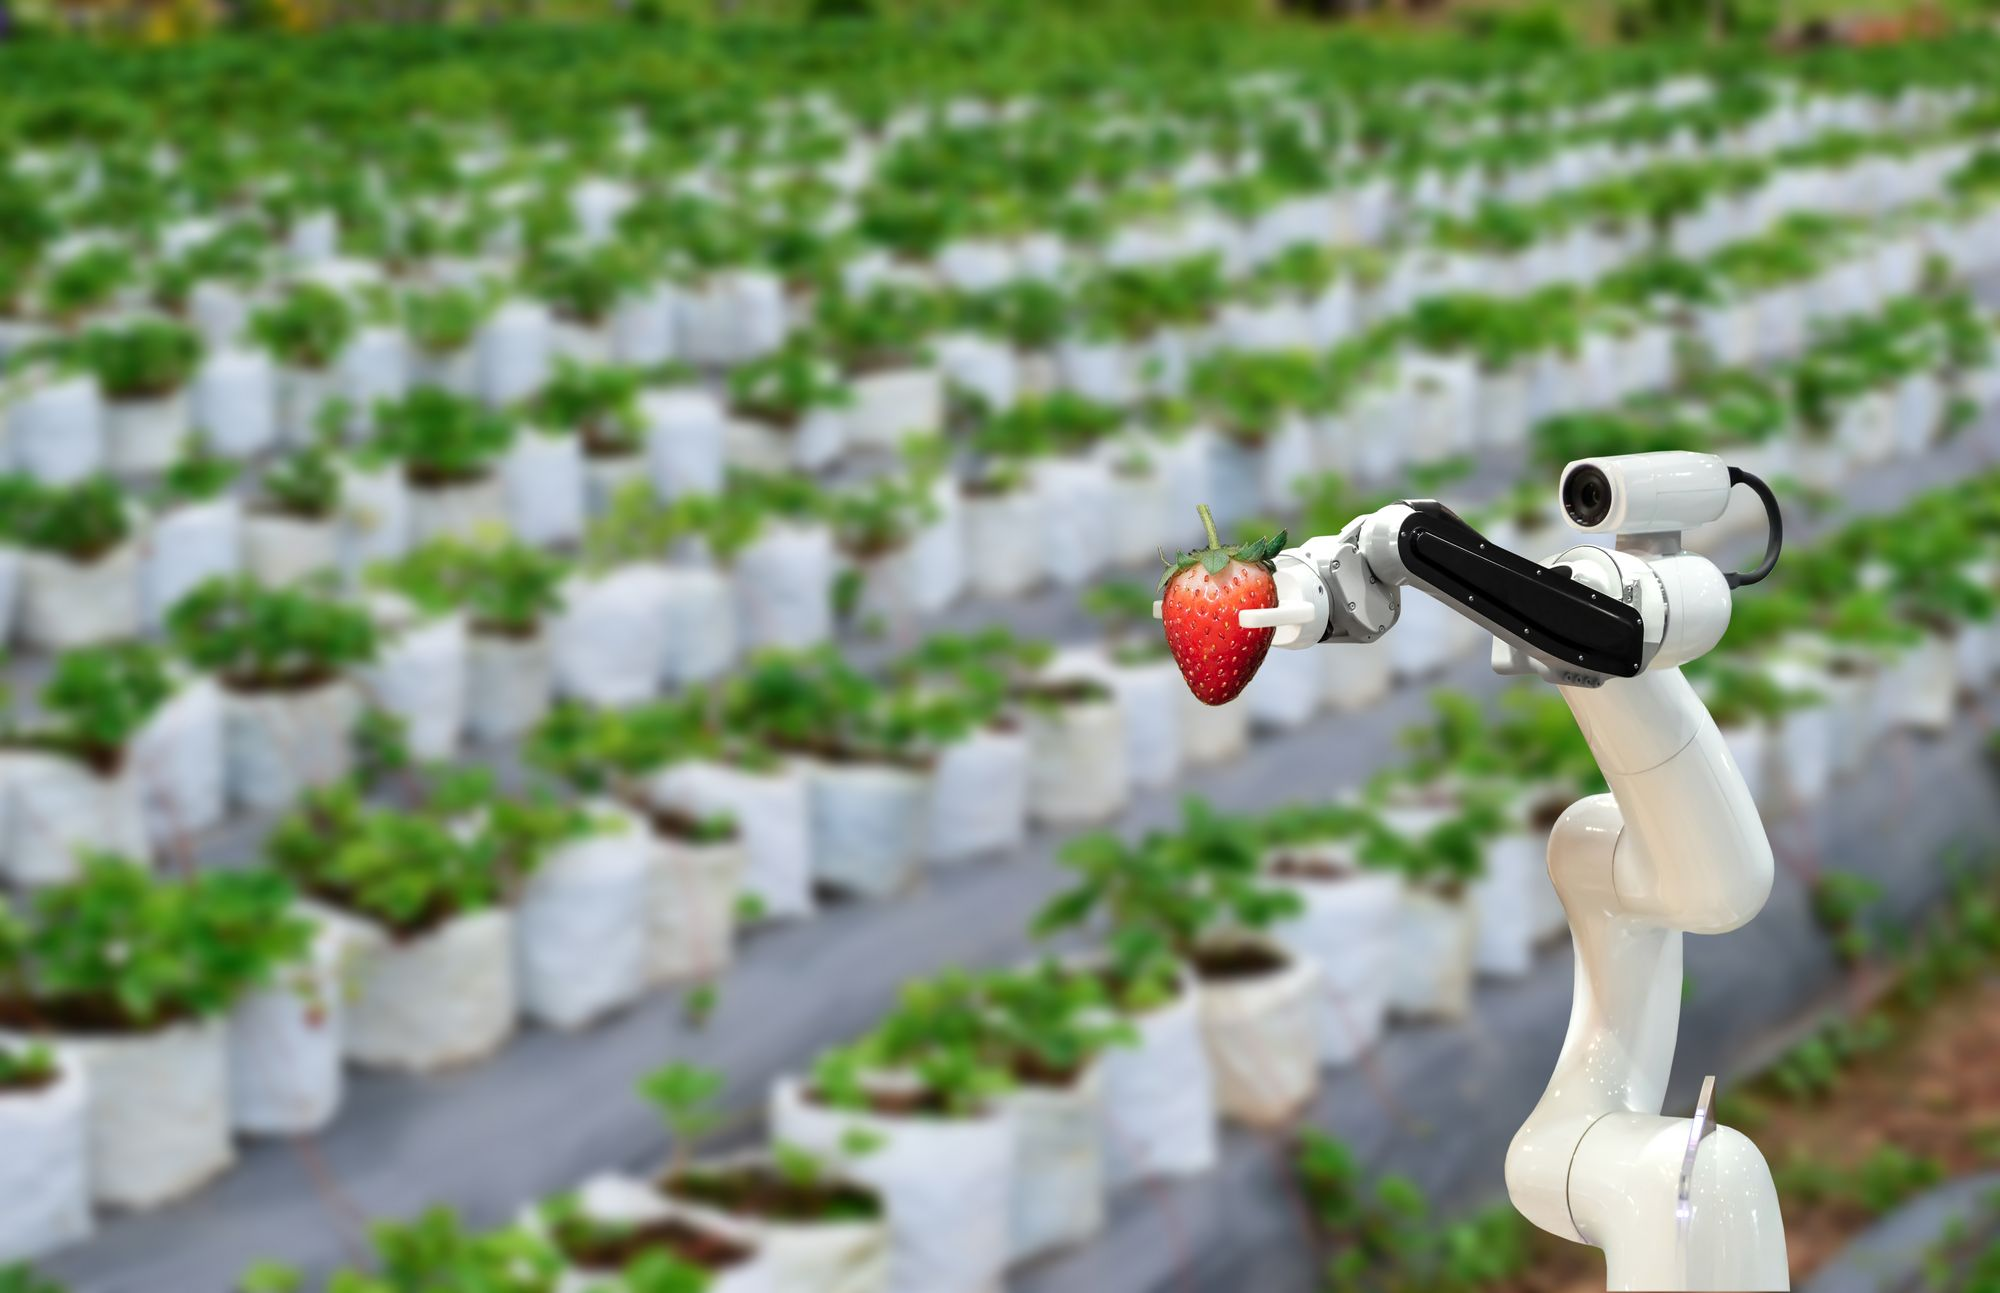 Photo of the project agROBOfood, robot holding a strawberry, field